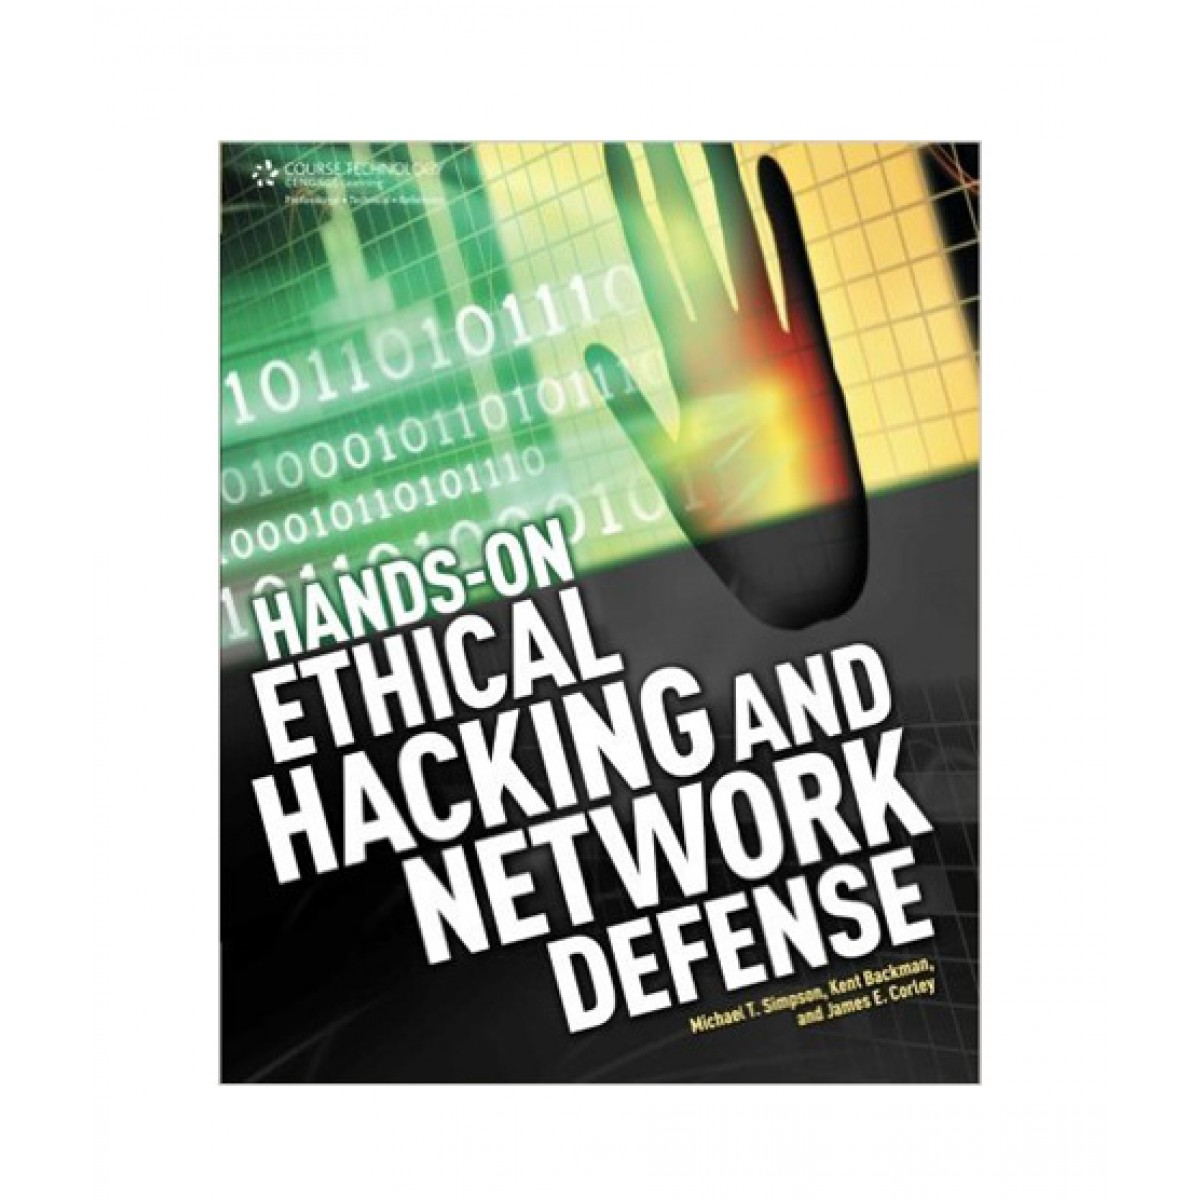 Hands-On Ethical Hacking and Network Defense Book 1st Edition